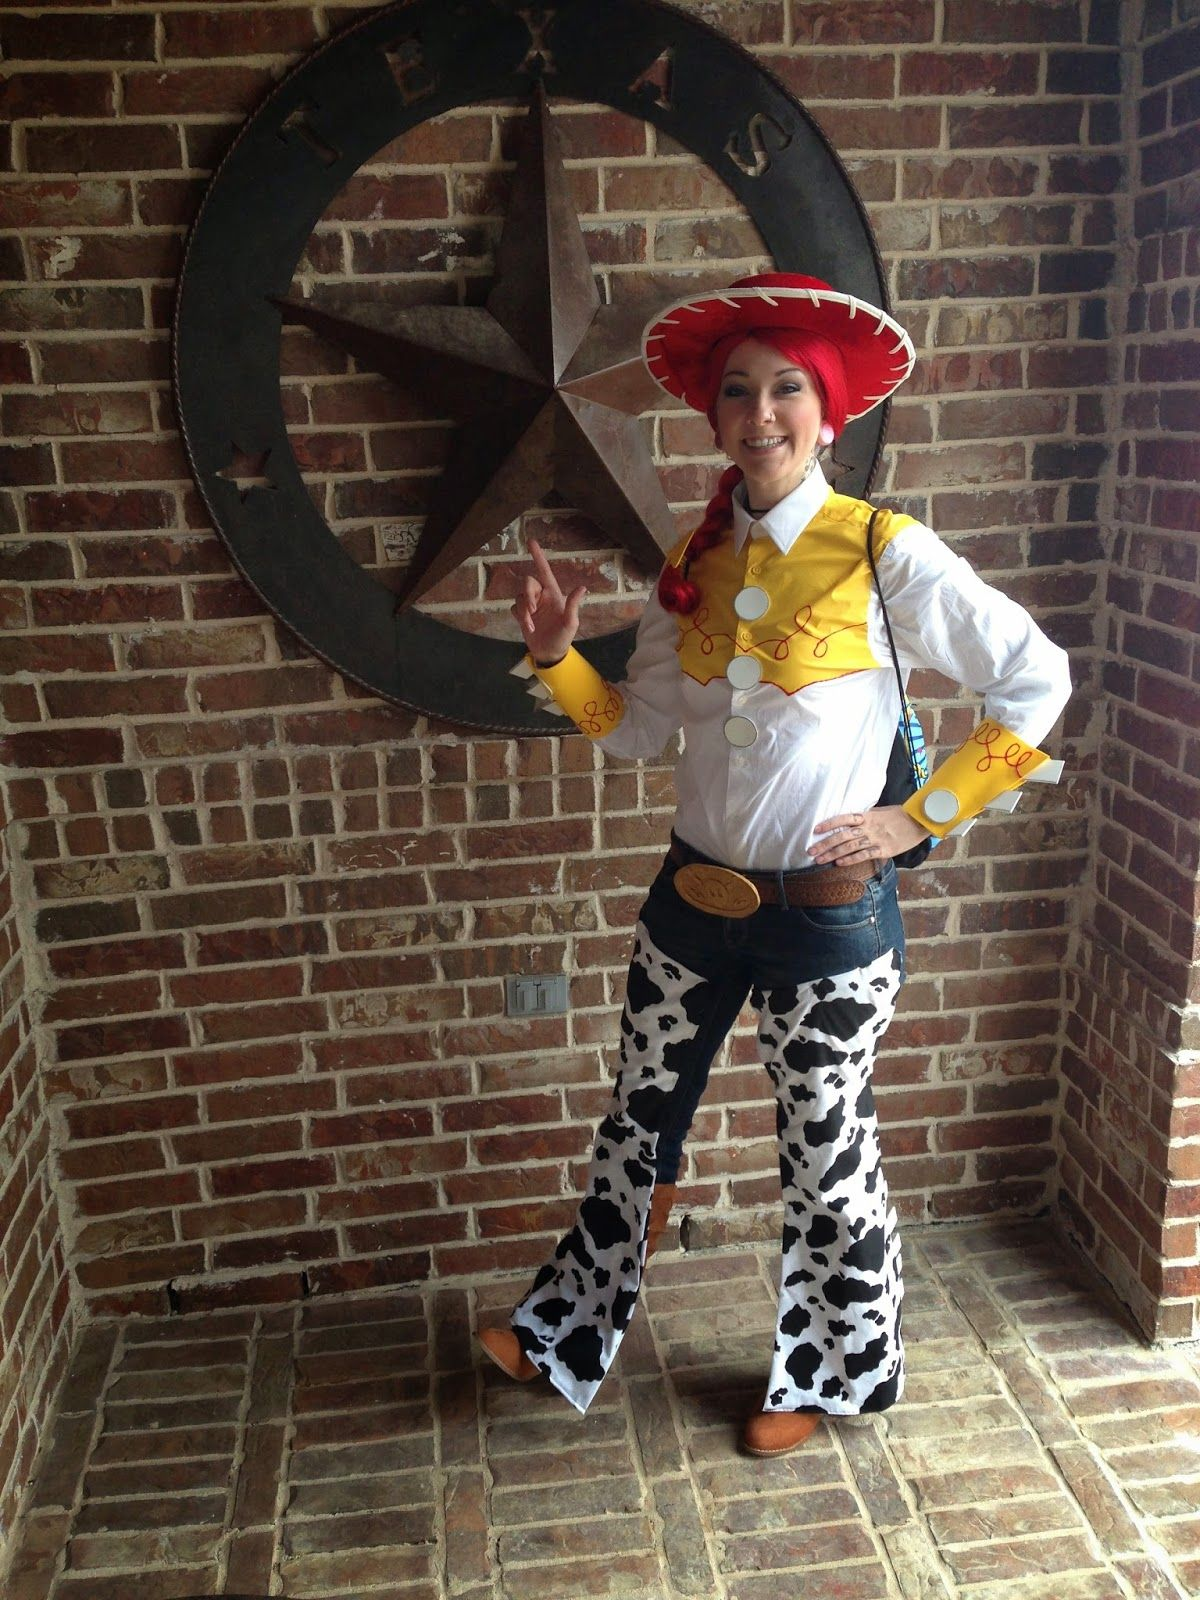 Great Diy Jessie From Toy Story Tutorial Costume Idea Diy Toy